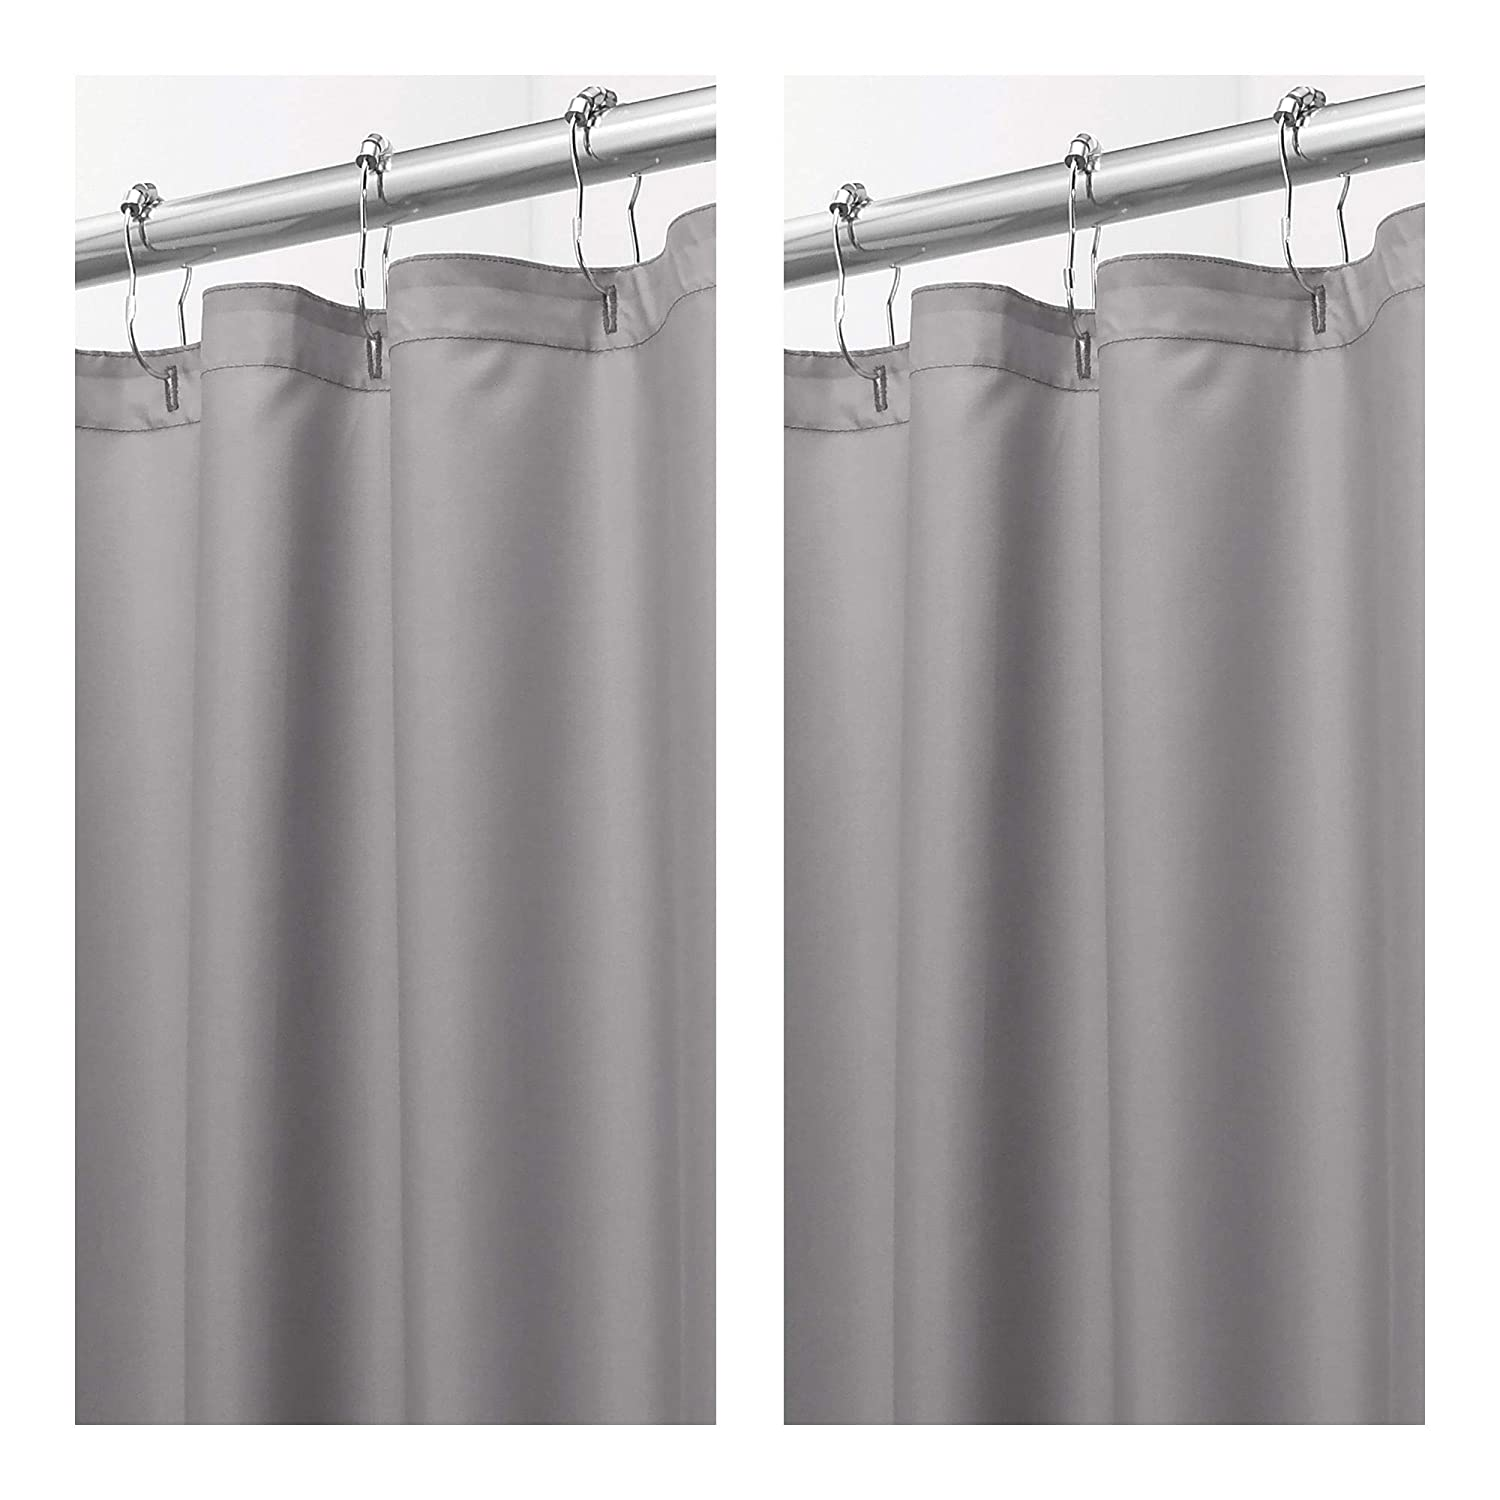 mDesign Extra Long Water Repellent, Mildew Resistant, Heavy Duty Flat Weave Fabric Shower Curtain, Liner - Weighted Bottom Hem Bathroom Shower Bathtub, 72